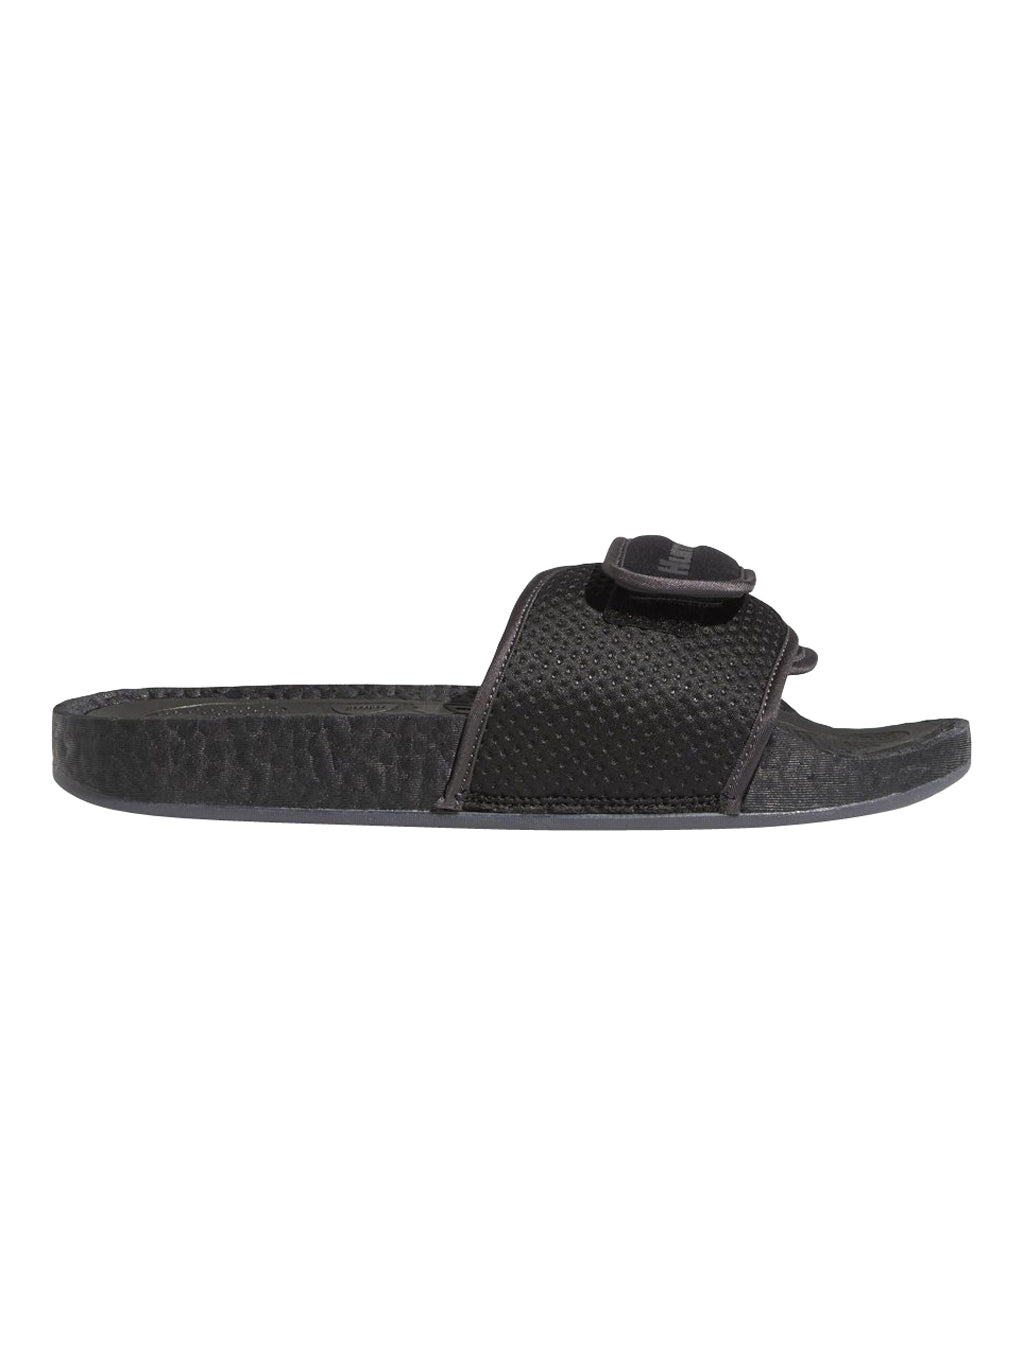 Black Adidas x Pharrell Williams Chancletas HU Slides